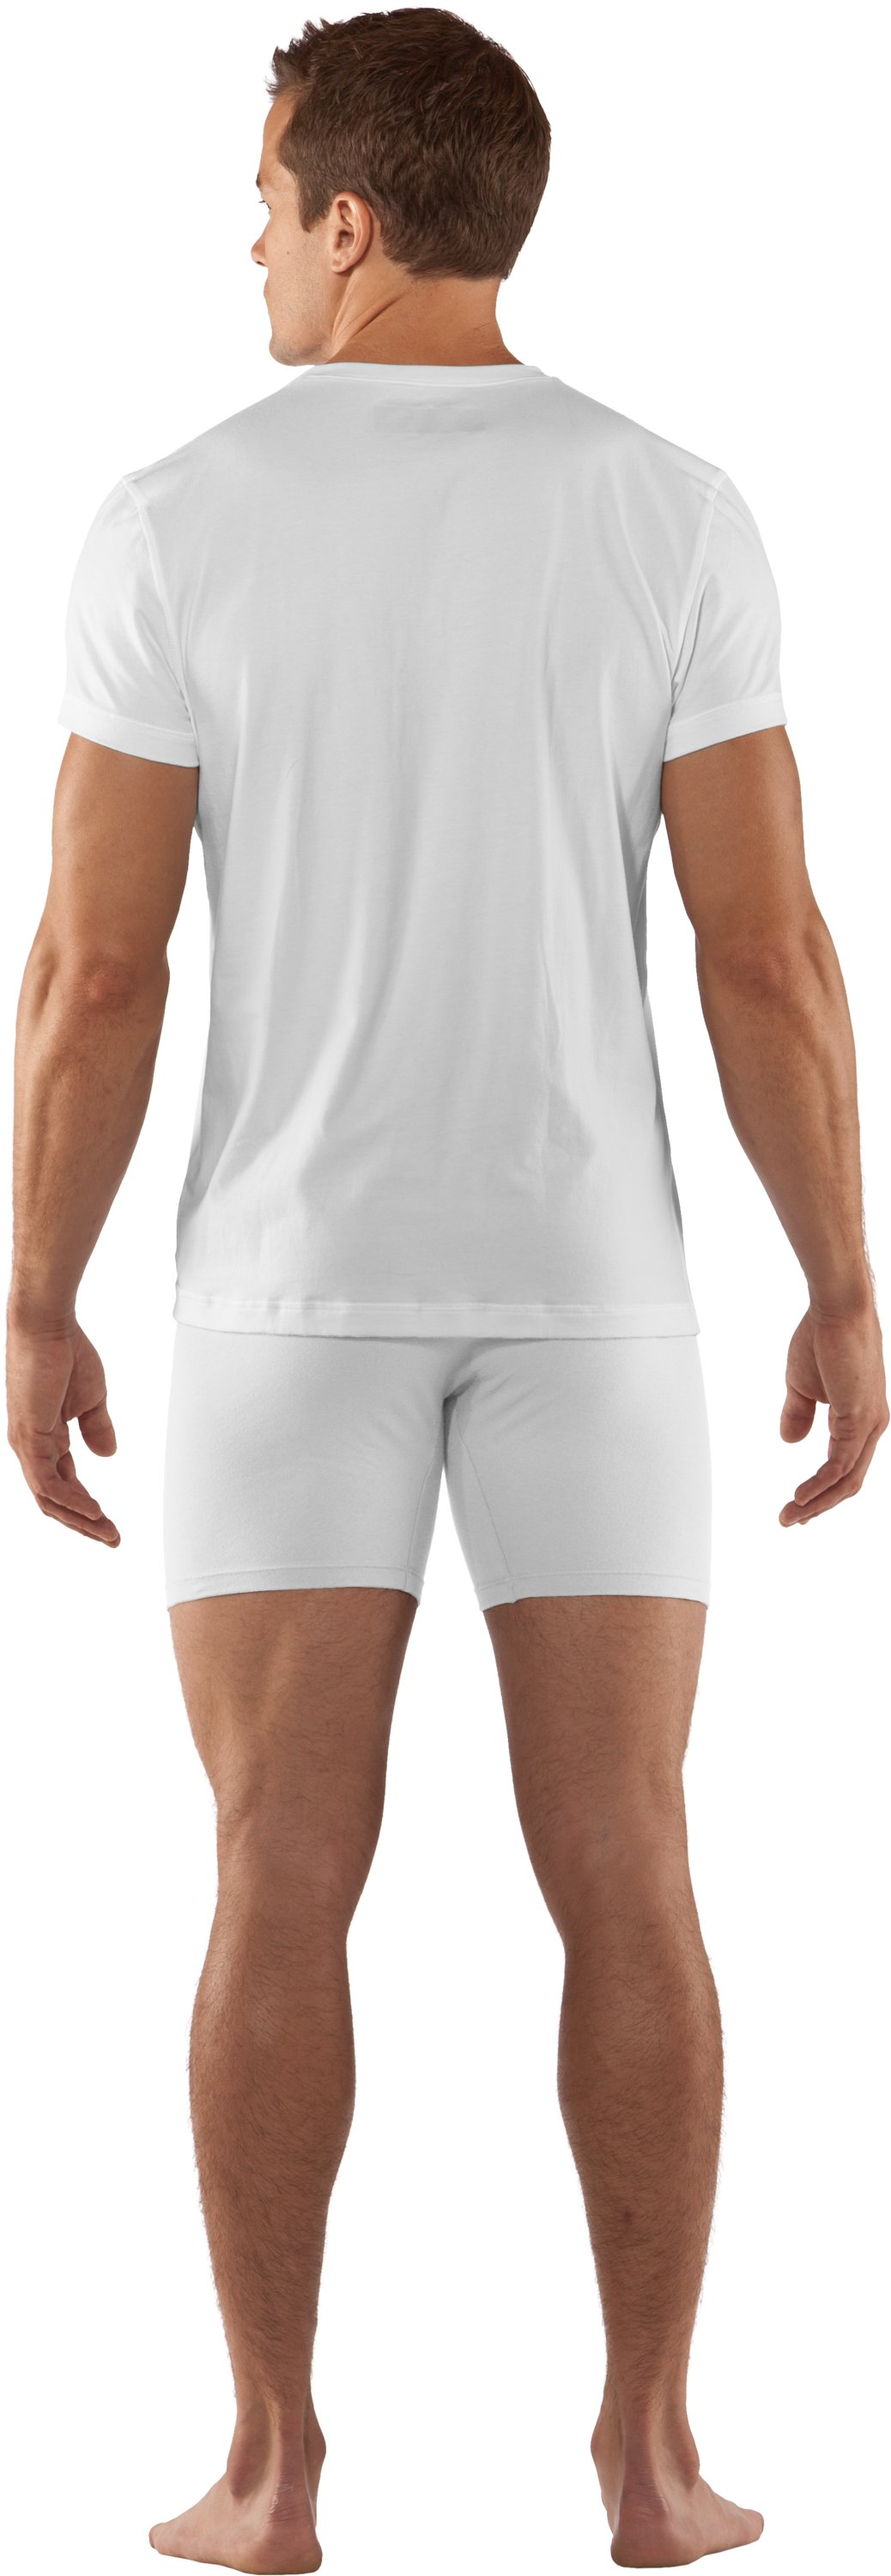 Men's Charged Cotton® V-neck Undershirt, White, Back